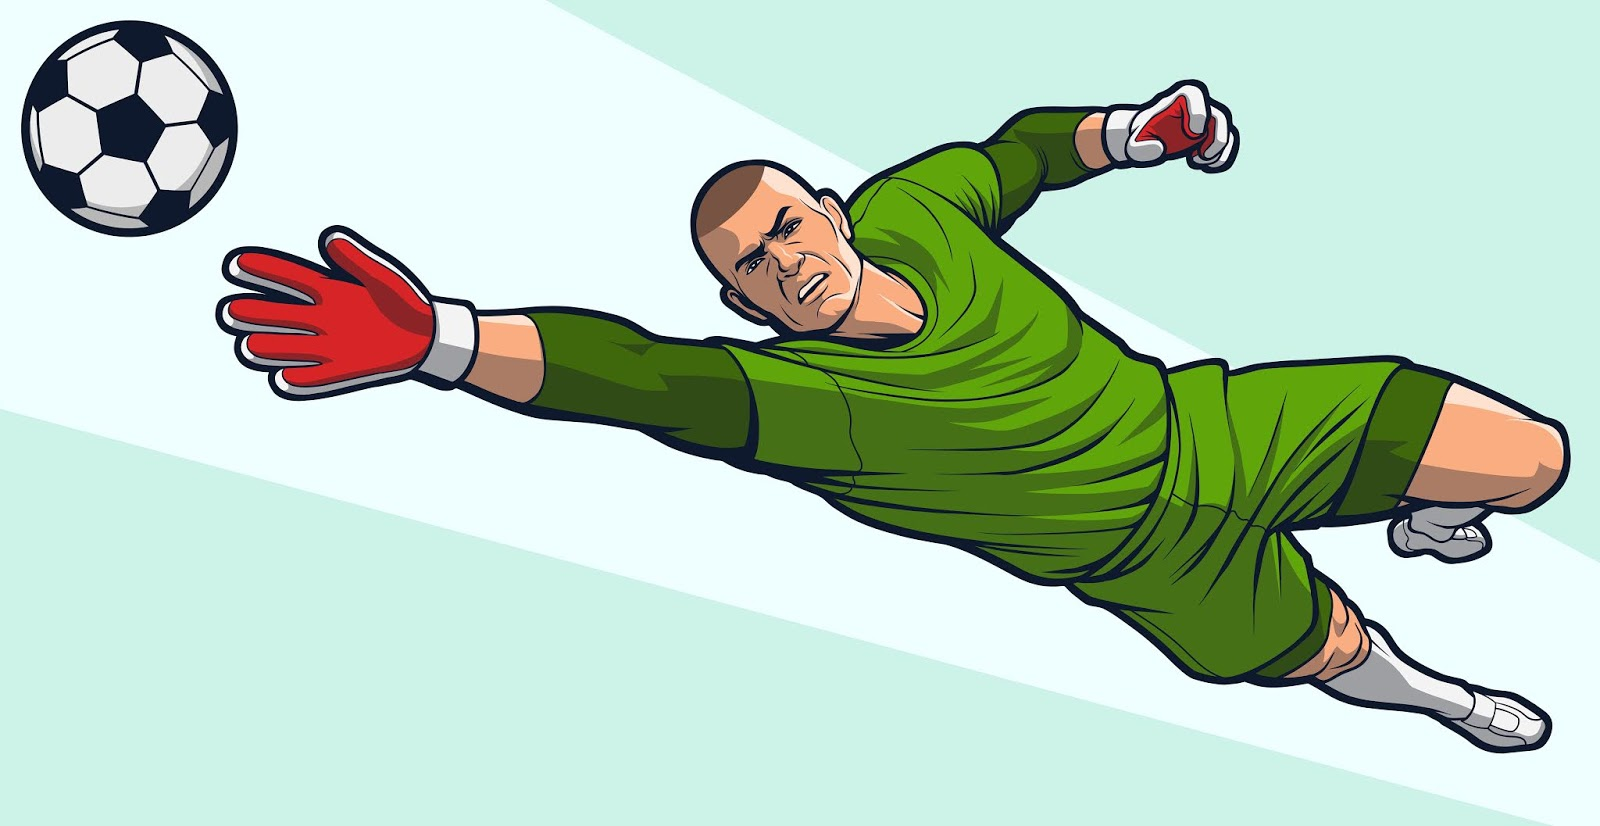 Goalkeeper Blocking Ball Free Download Vector CDR, AI, EPS and PNG Formats